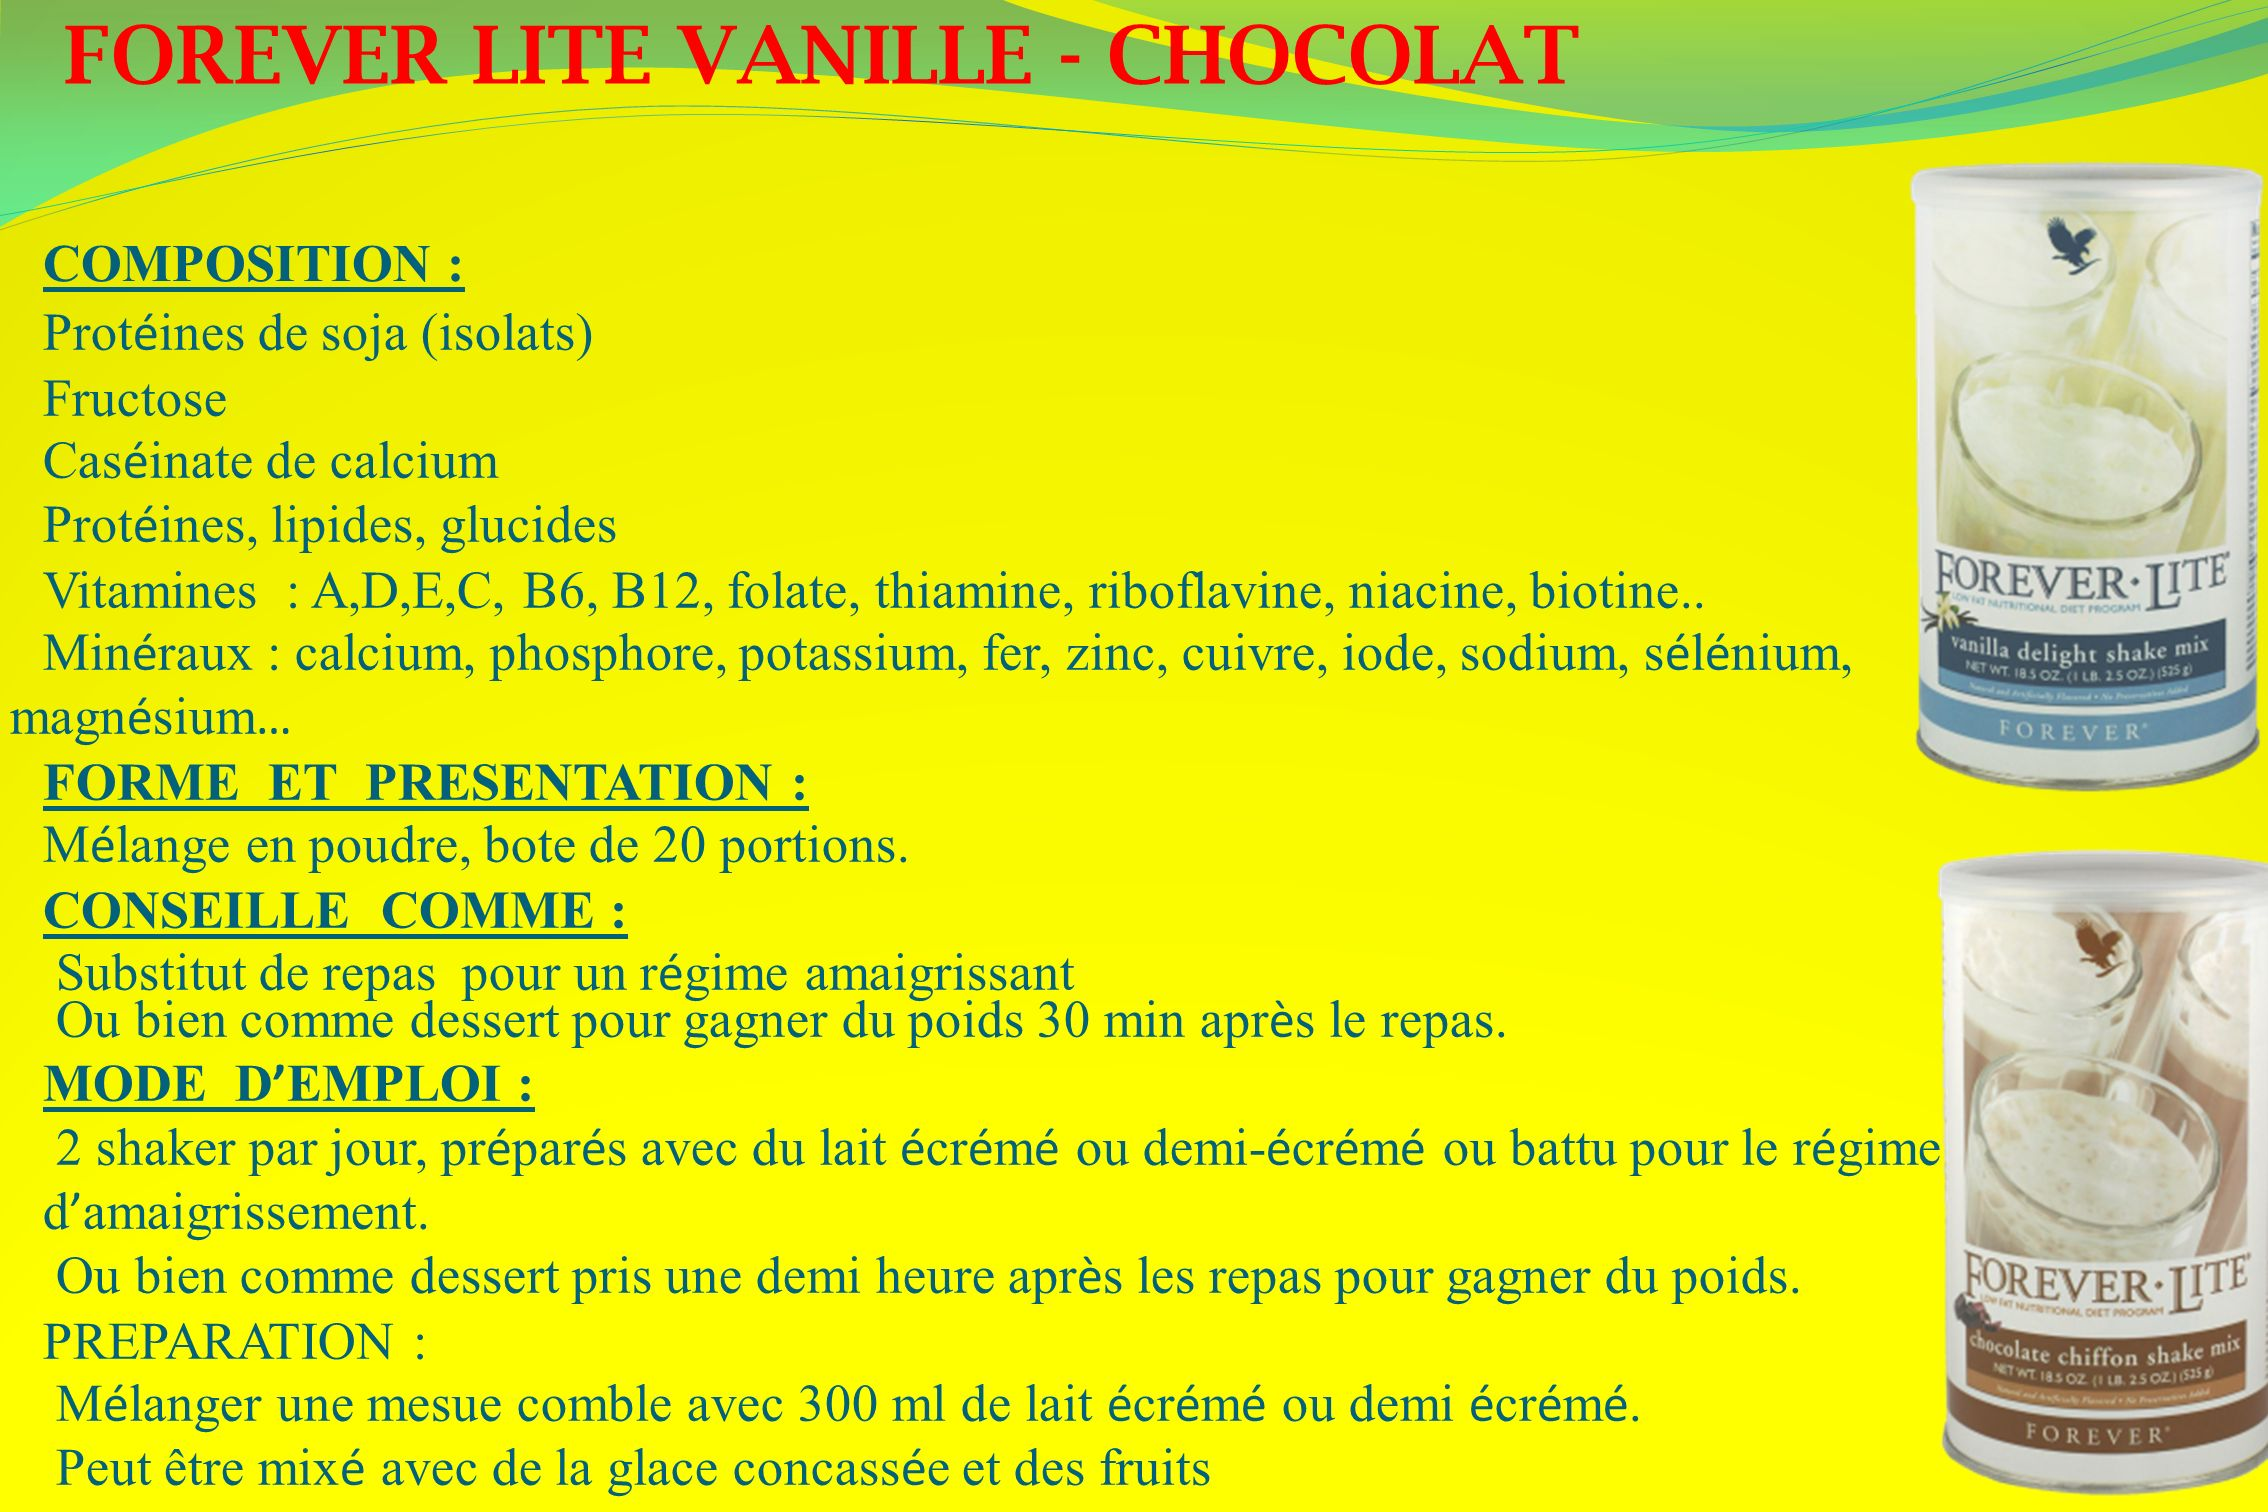 FOREVER LITE VANILLE - CHOCOLAT